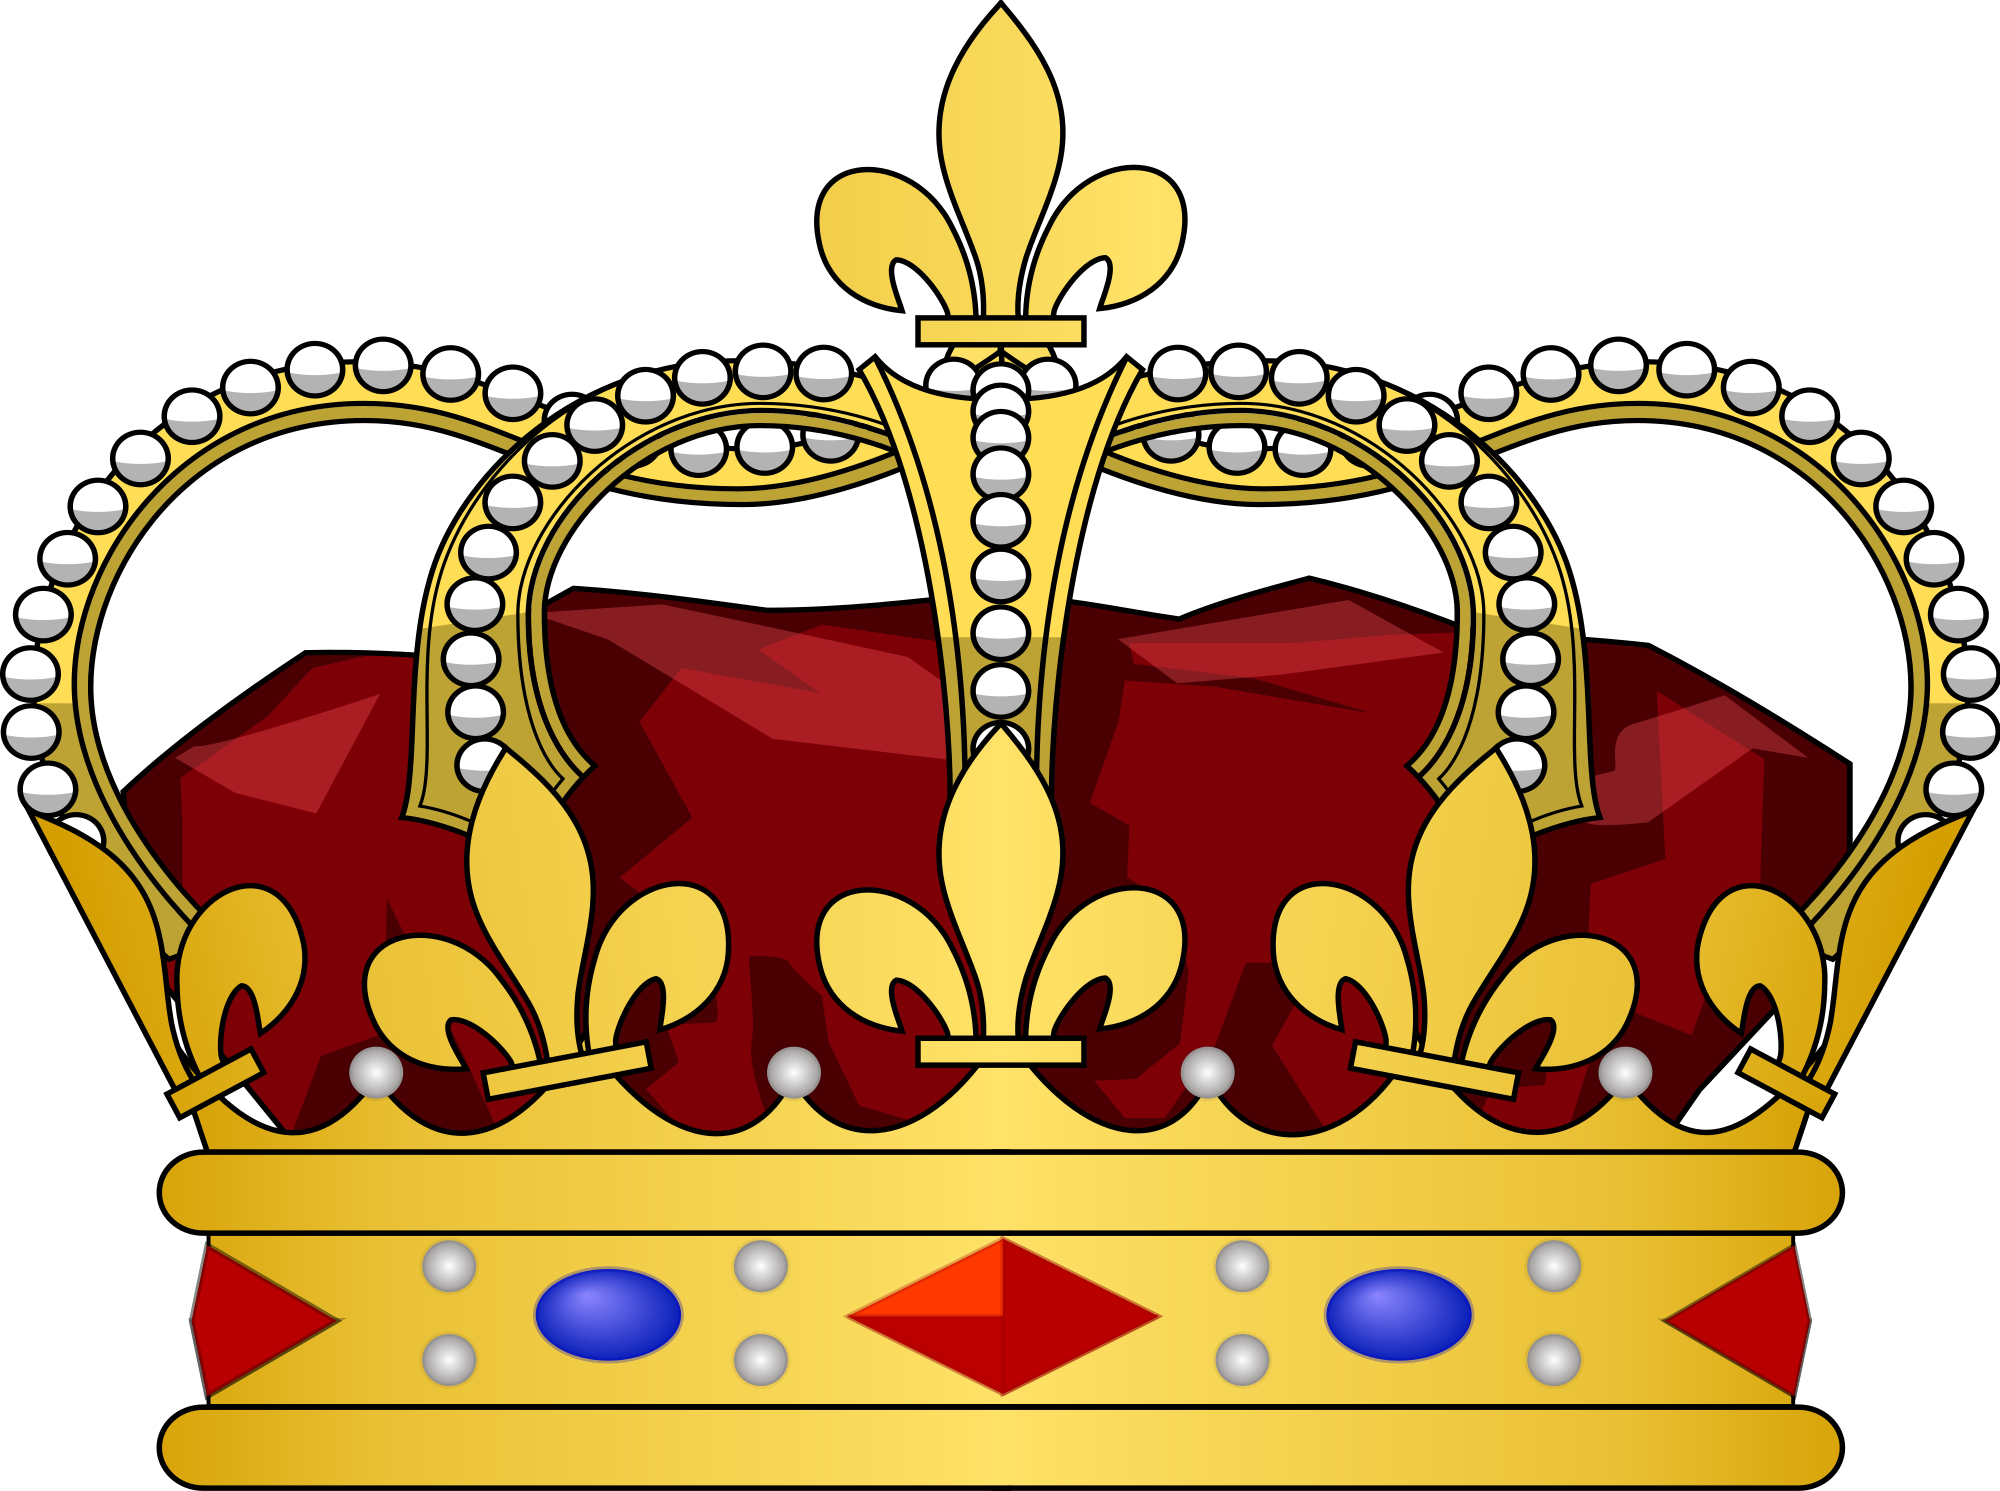 File:French heraldic crowns - King.svg - Wikimedia Commons